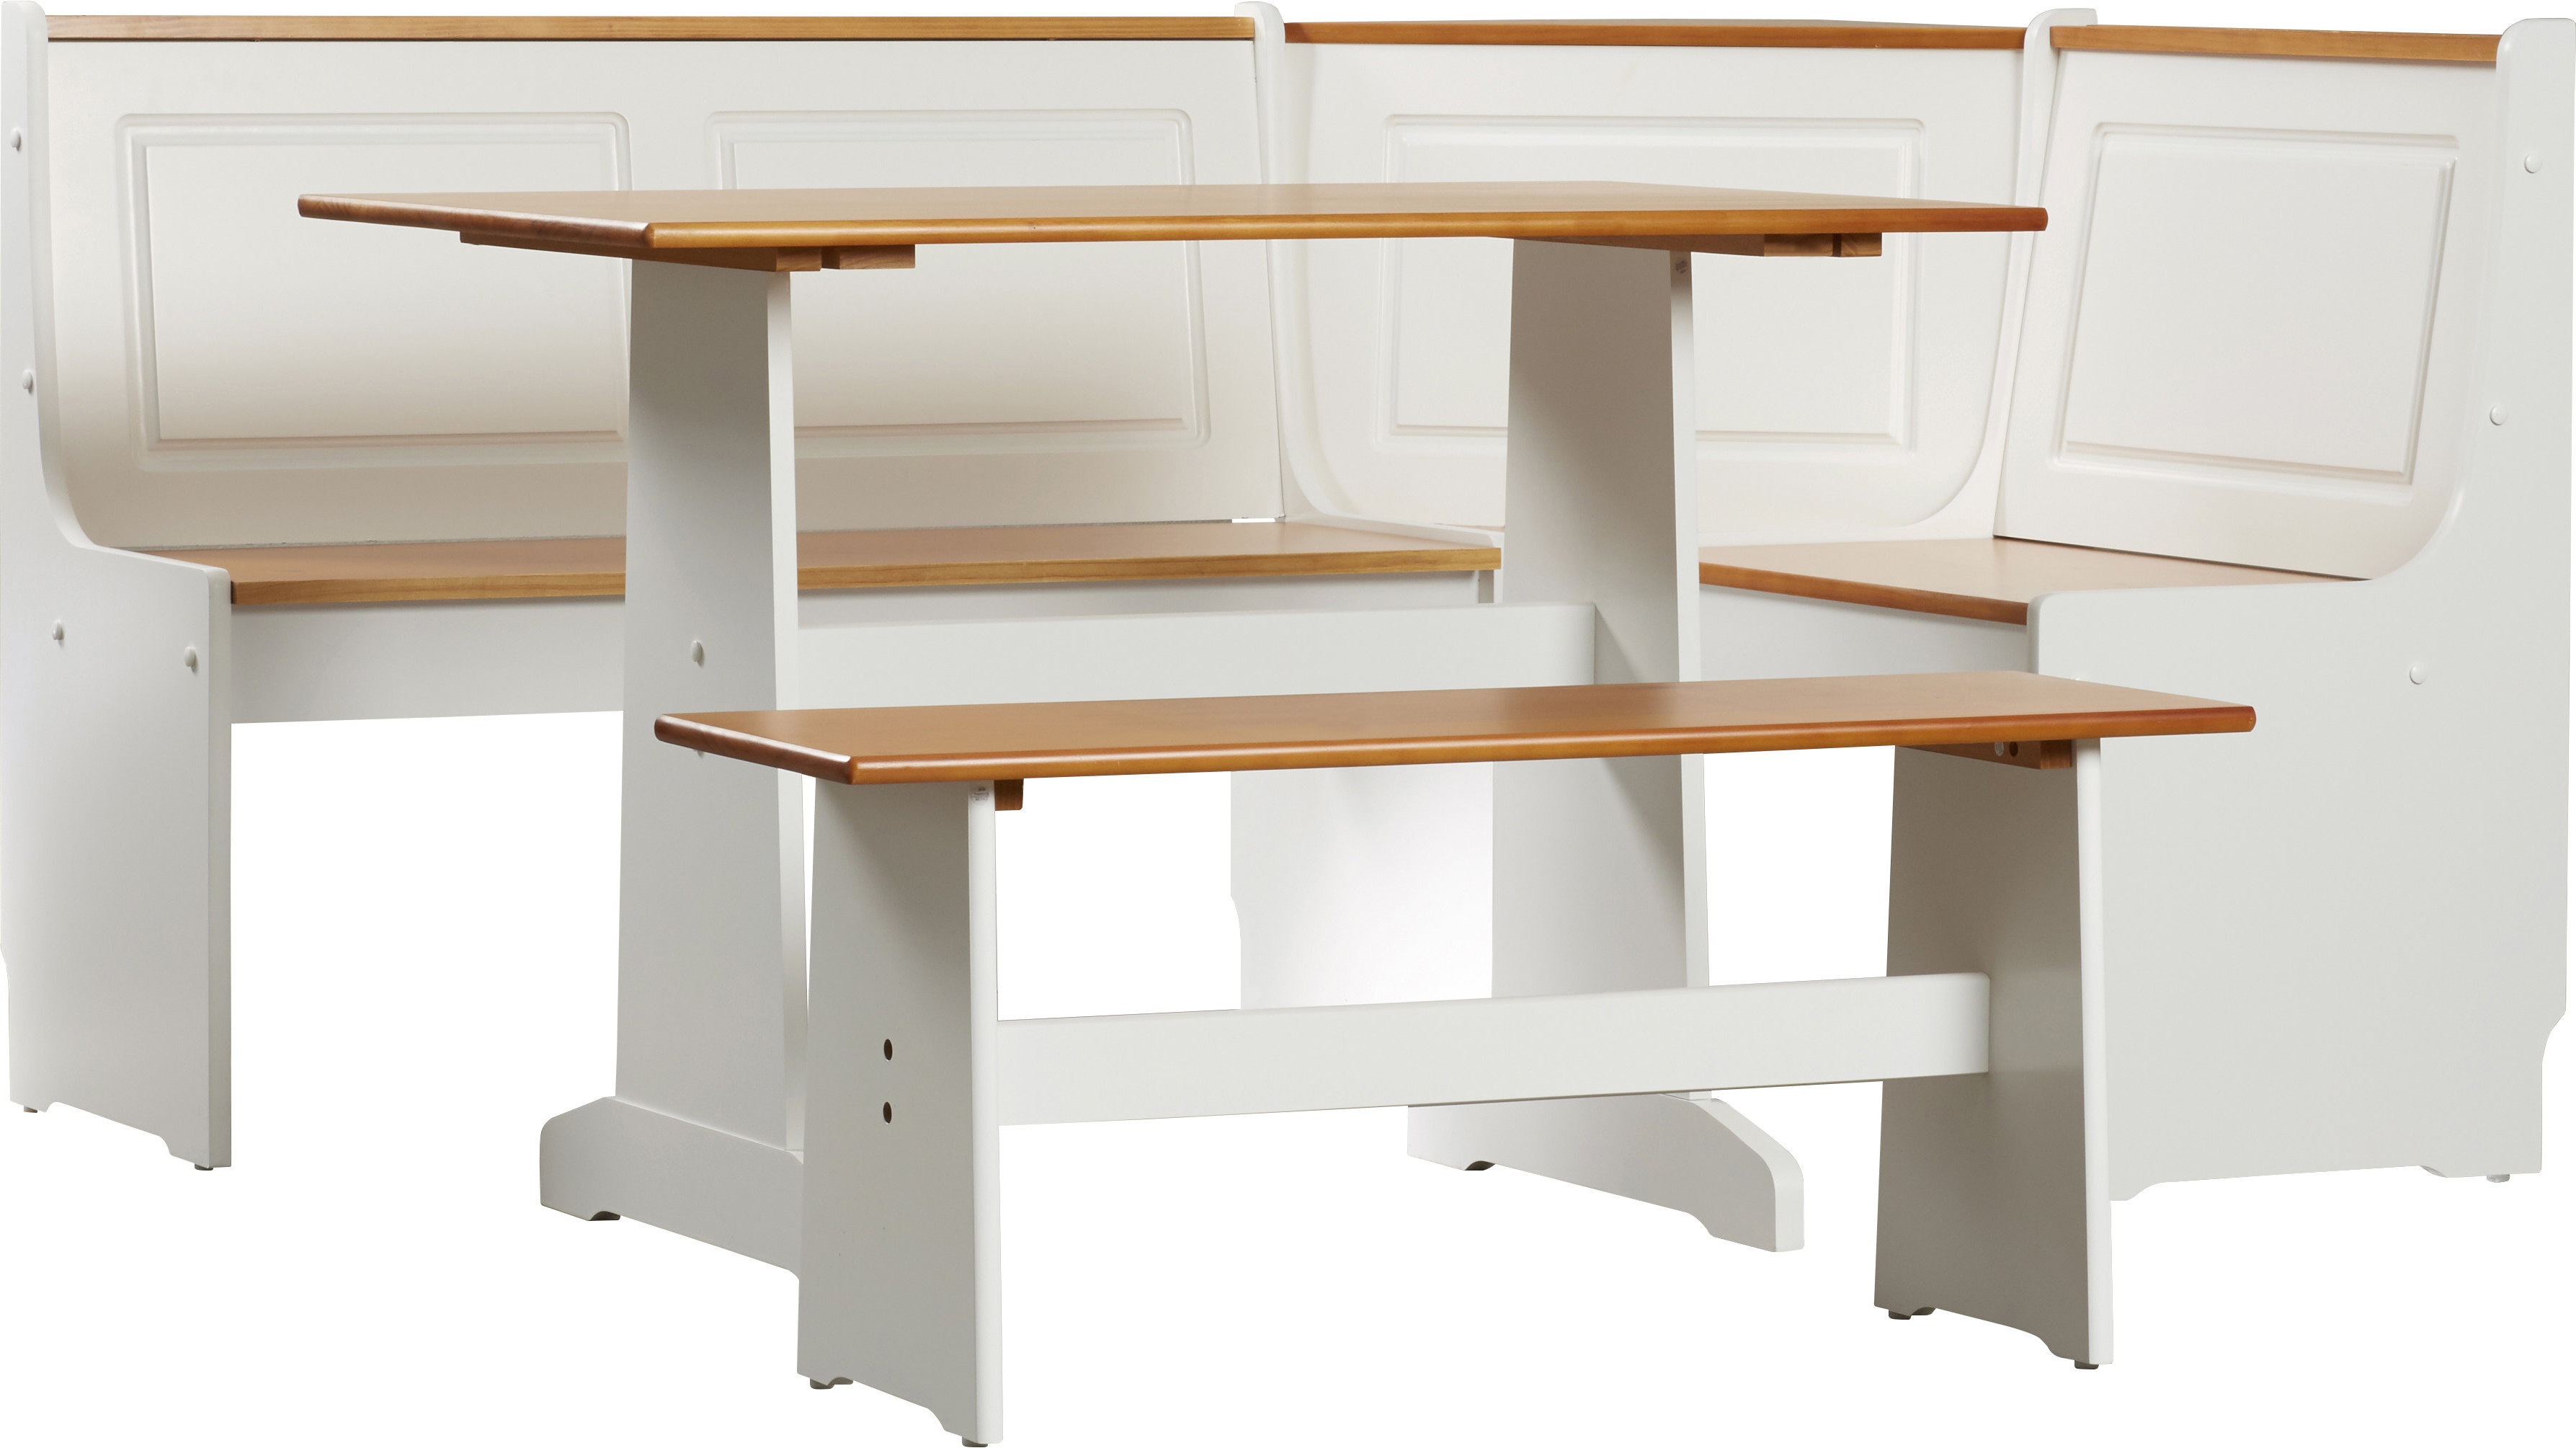 Joss & Main Pertaining To Well Known 3 Piece Breakfast Nook Dinning Set (Gallery 13 of 25)